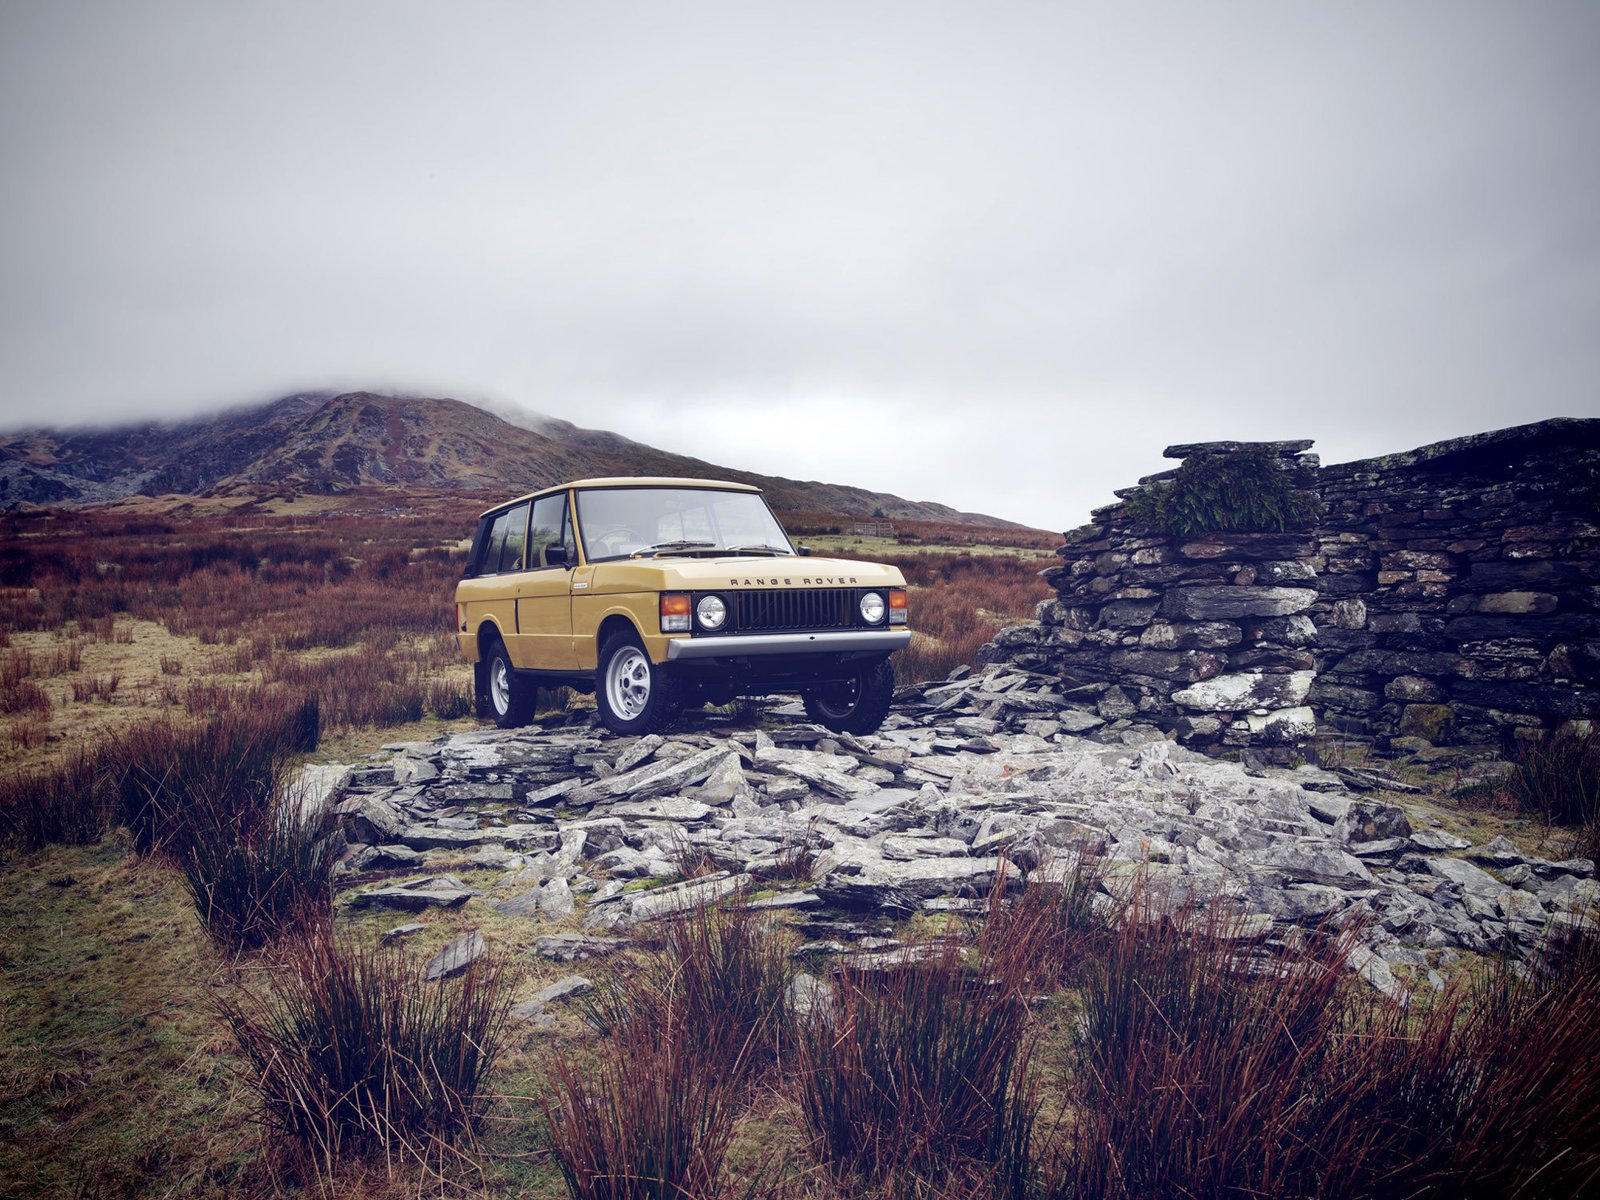 Photo 1 of 7 in 1978 Range Rover Classic Comes To The Reborn Series